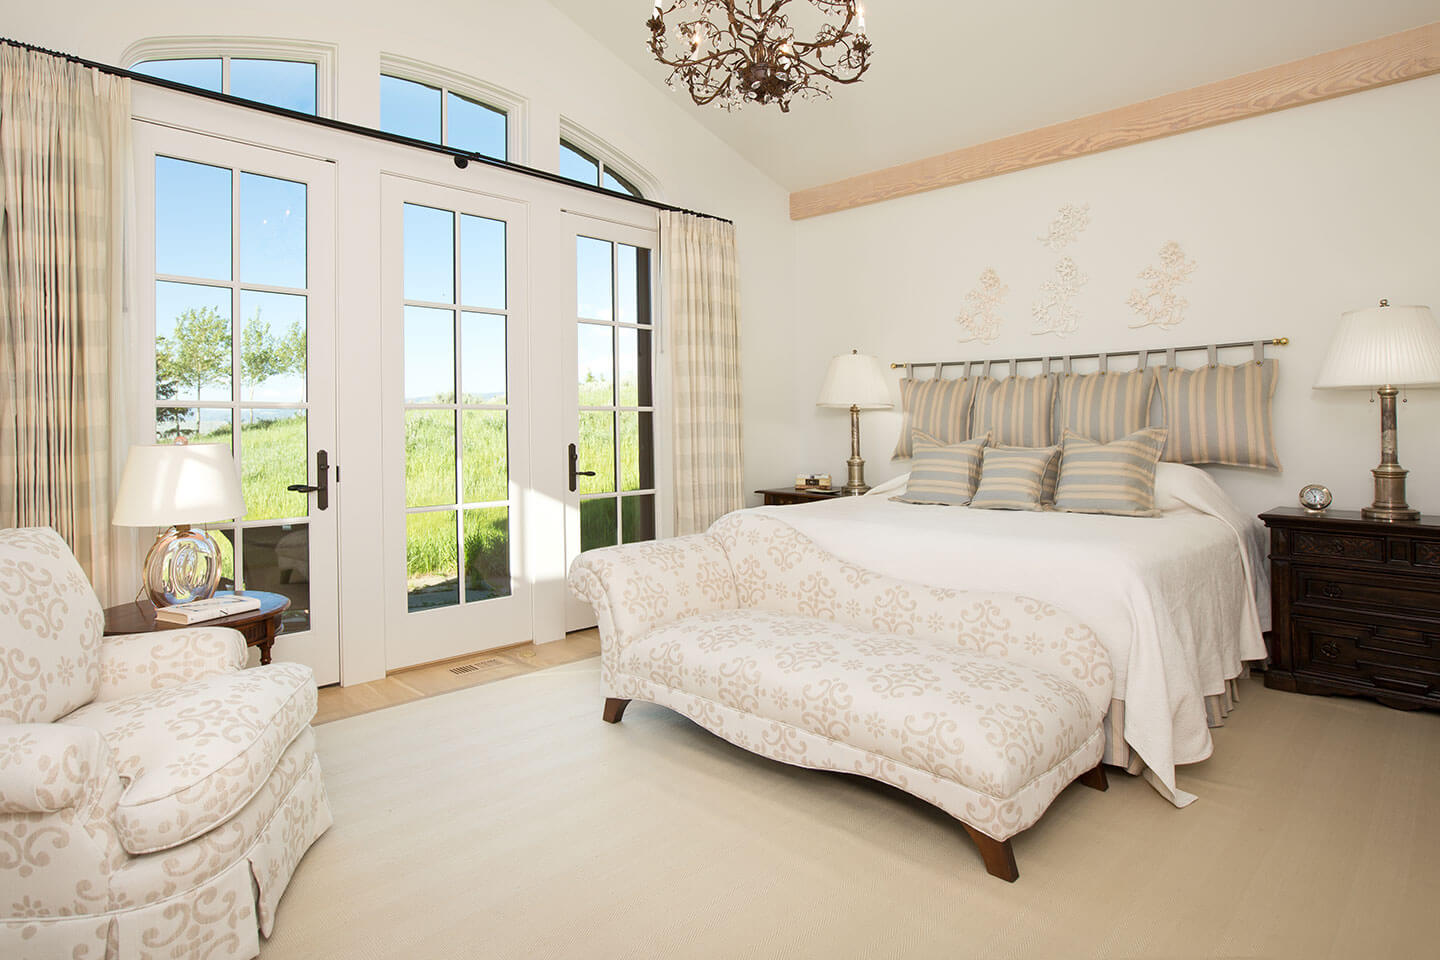 Renaissance style bedroom with an ivory white theme